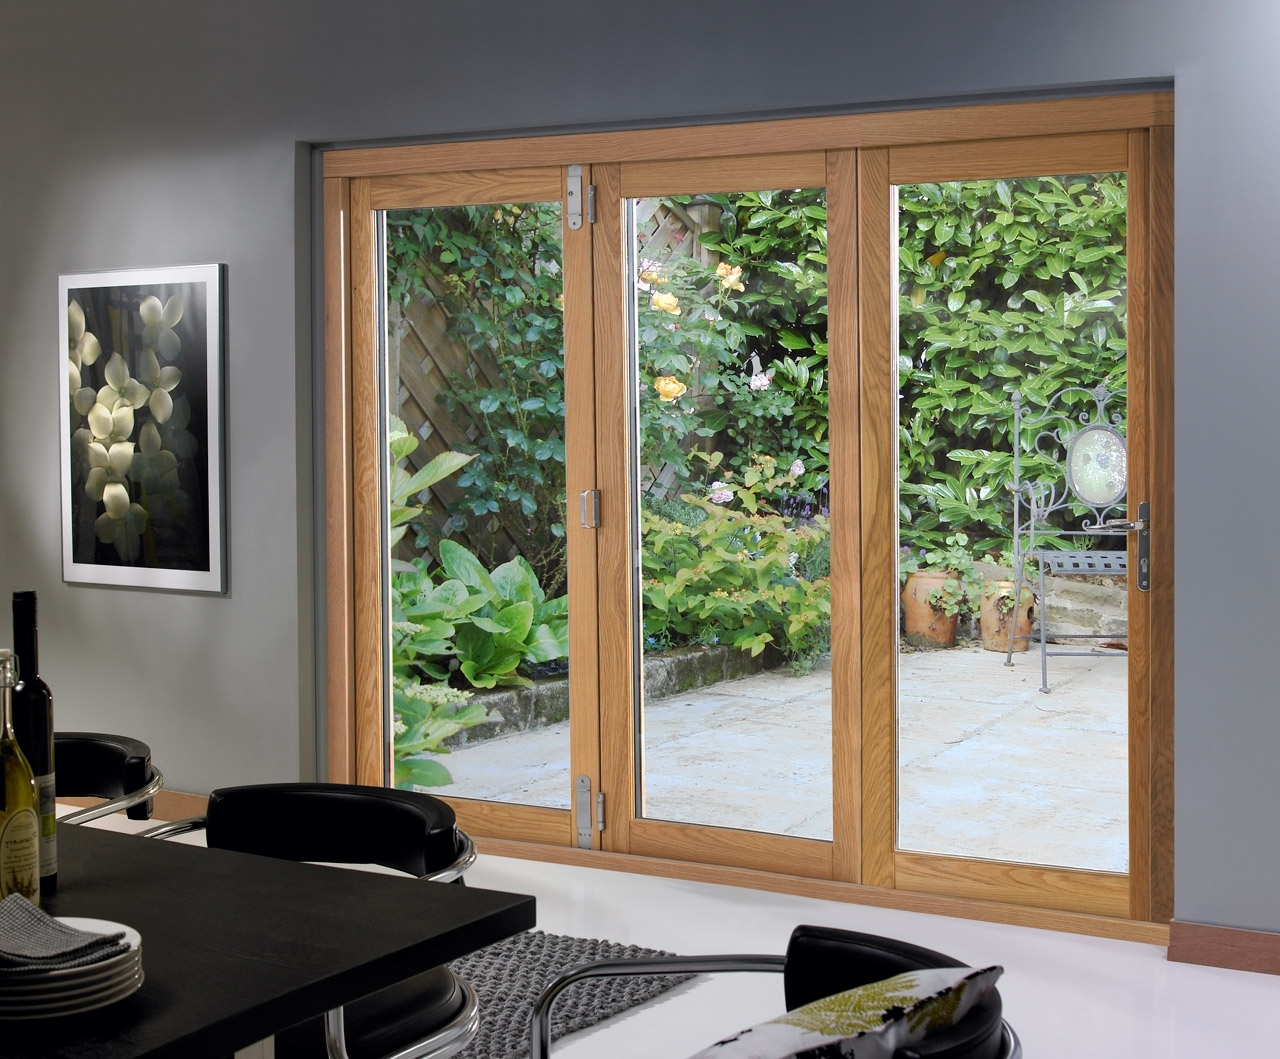 5 Foot Sliding Glass Patio Door1280 X 1059